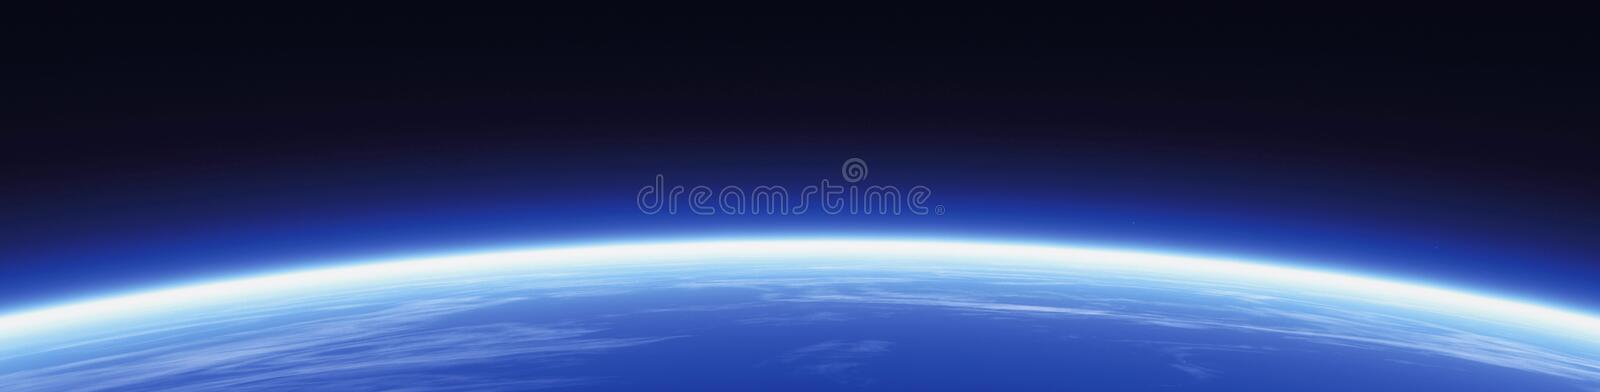 Horizon and world banner royalty free illustration